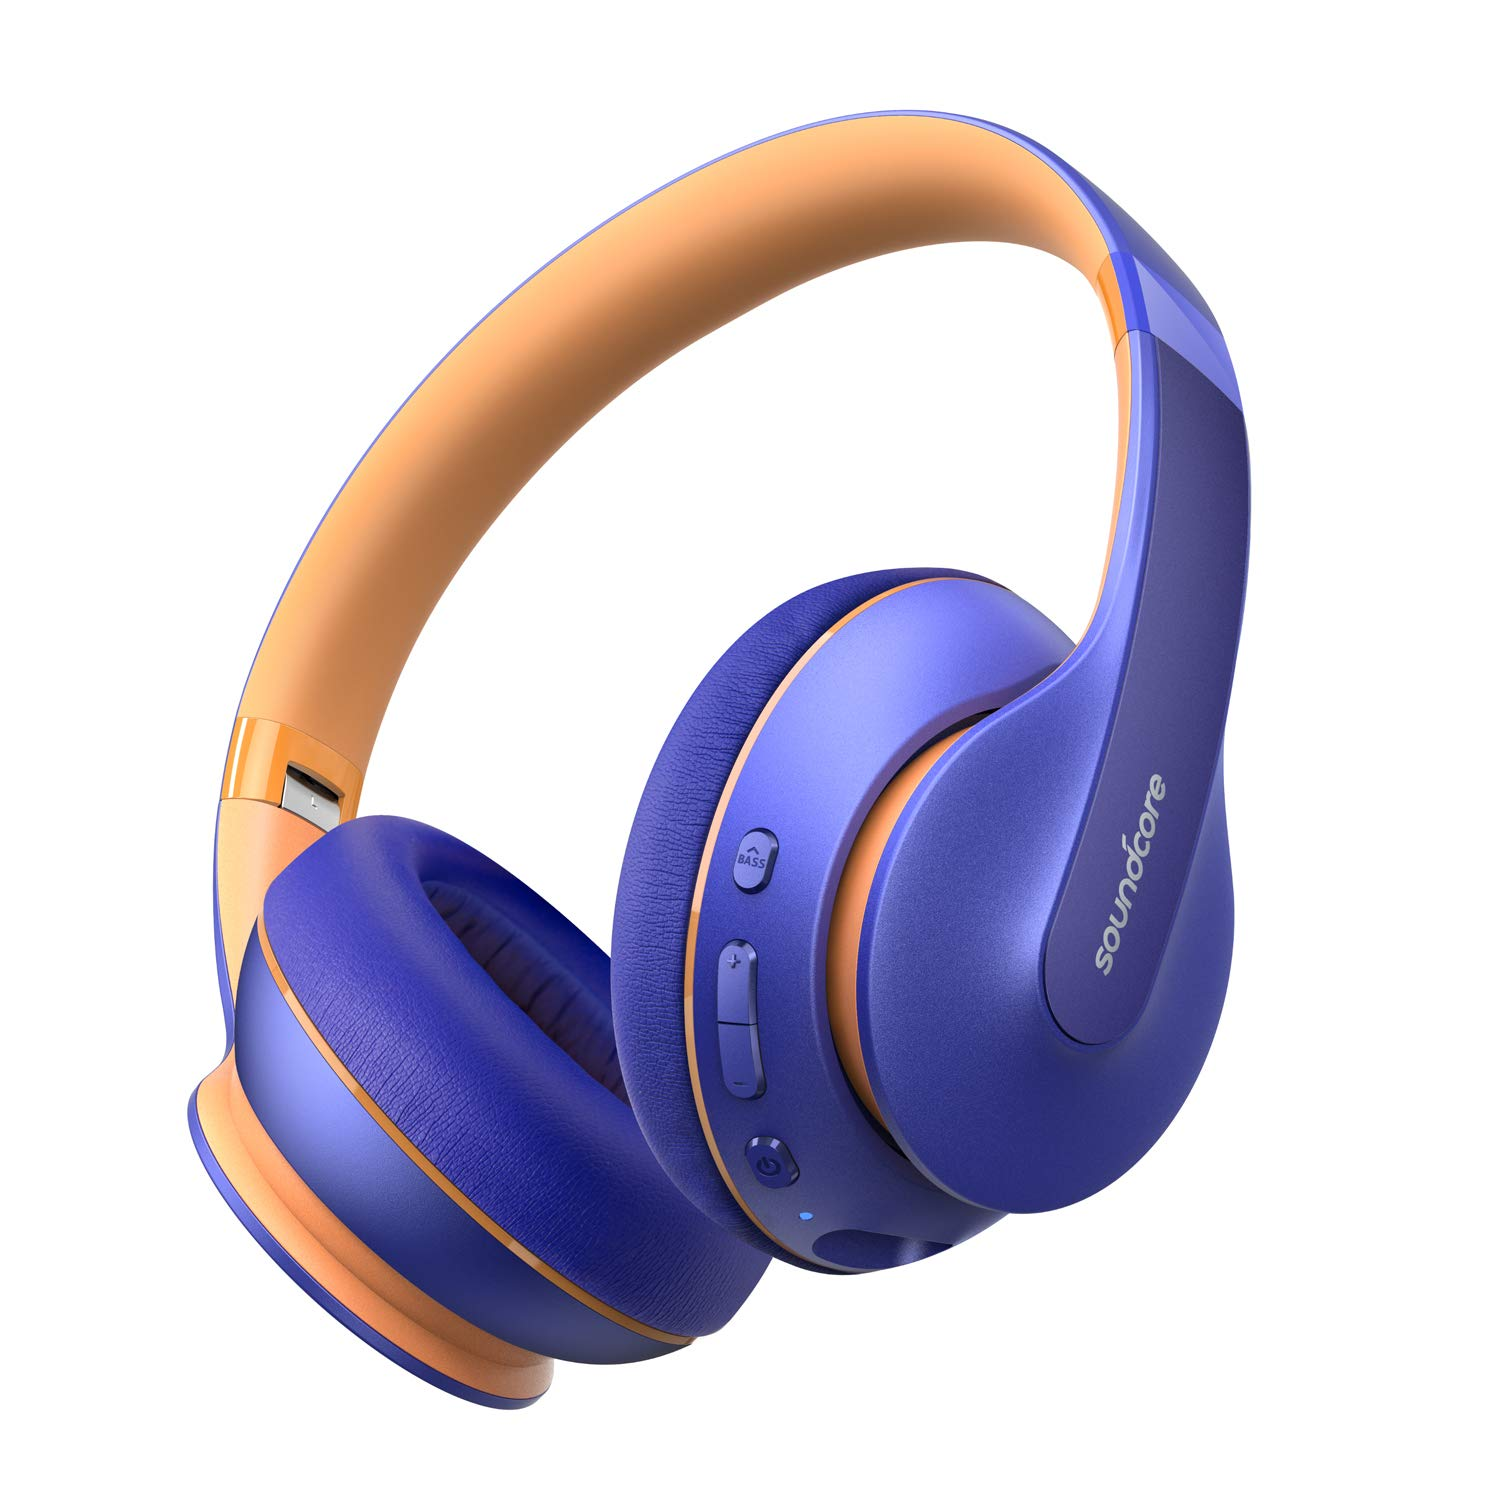 Anker Soundcore Life Q10 Wireless Bluetooth Headphones, Over Ear and Foldable, Hi-Res Certified Sound, 60-Hour Playtime and Fast USB-C Charging, Deep Bass, Aux Input (Blue)